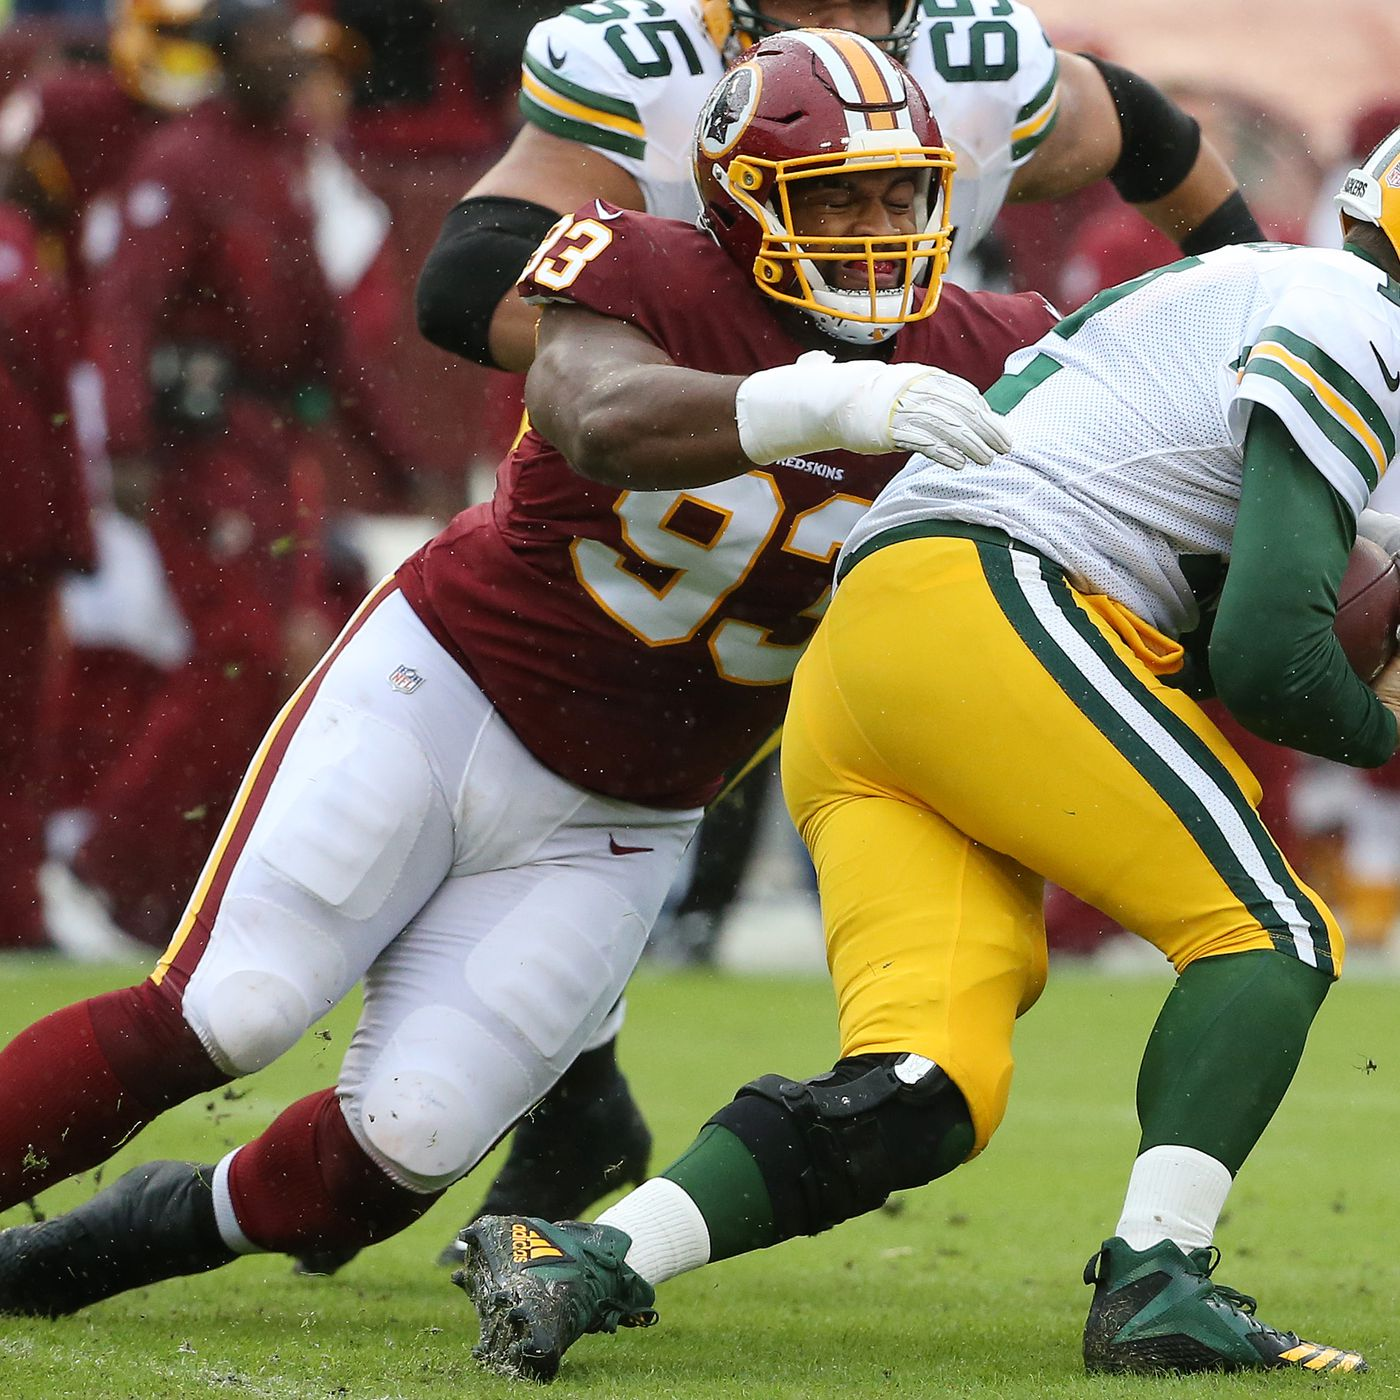 8168549fdc1 Jonathan Allen gets his first sack of the season, Redskins getting pressure  on Aaron Rodgers early